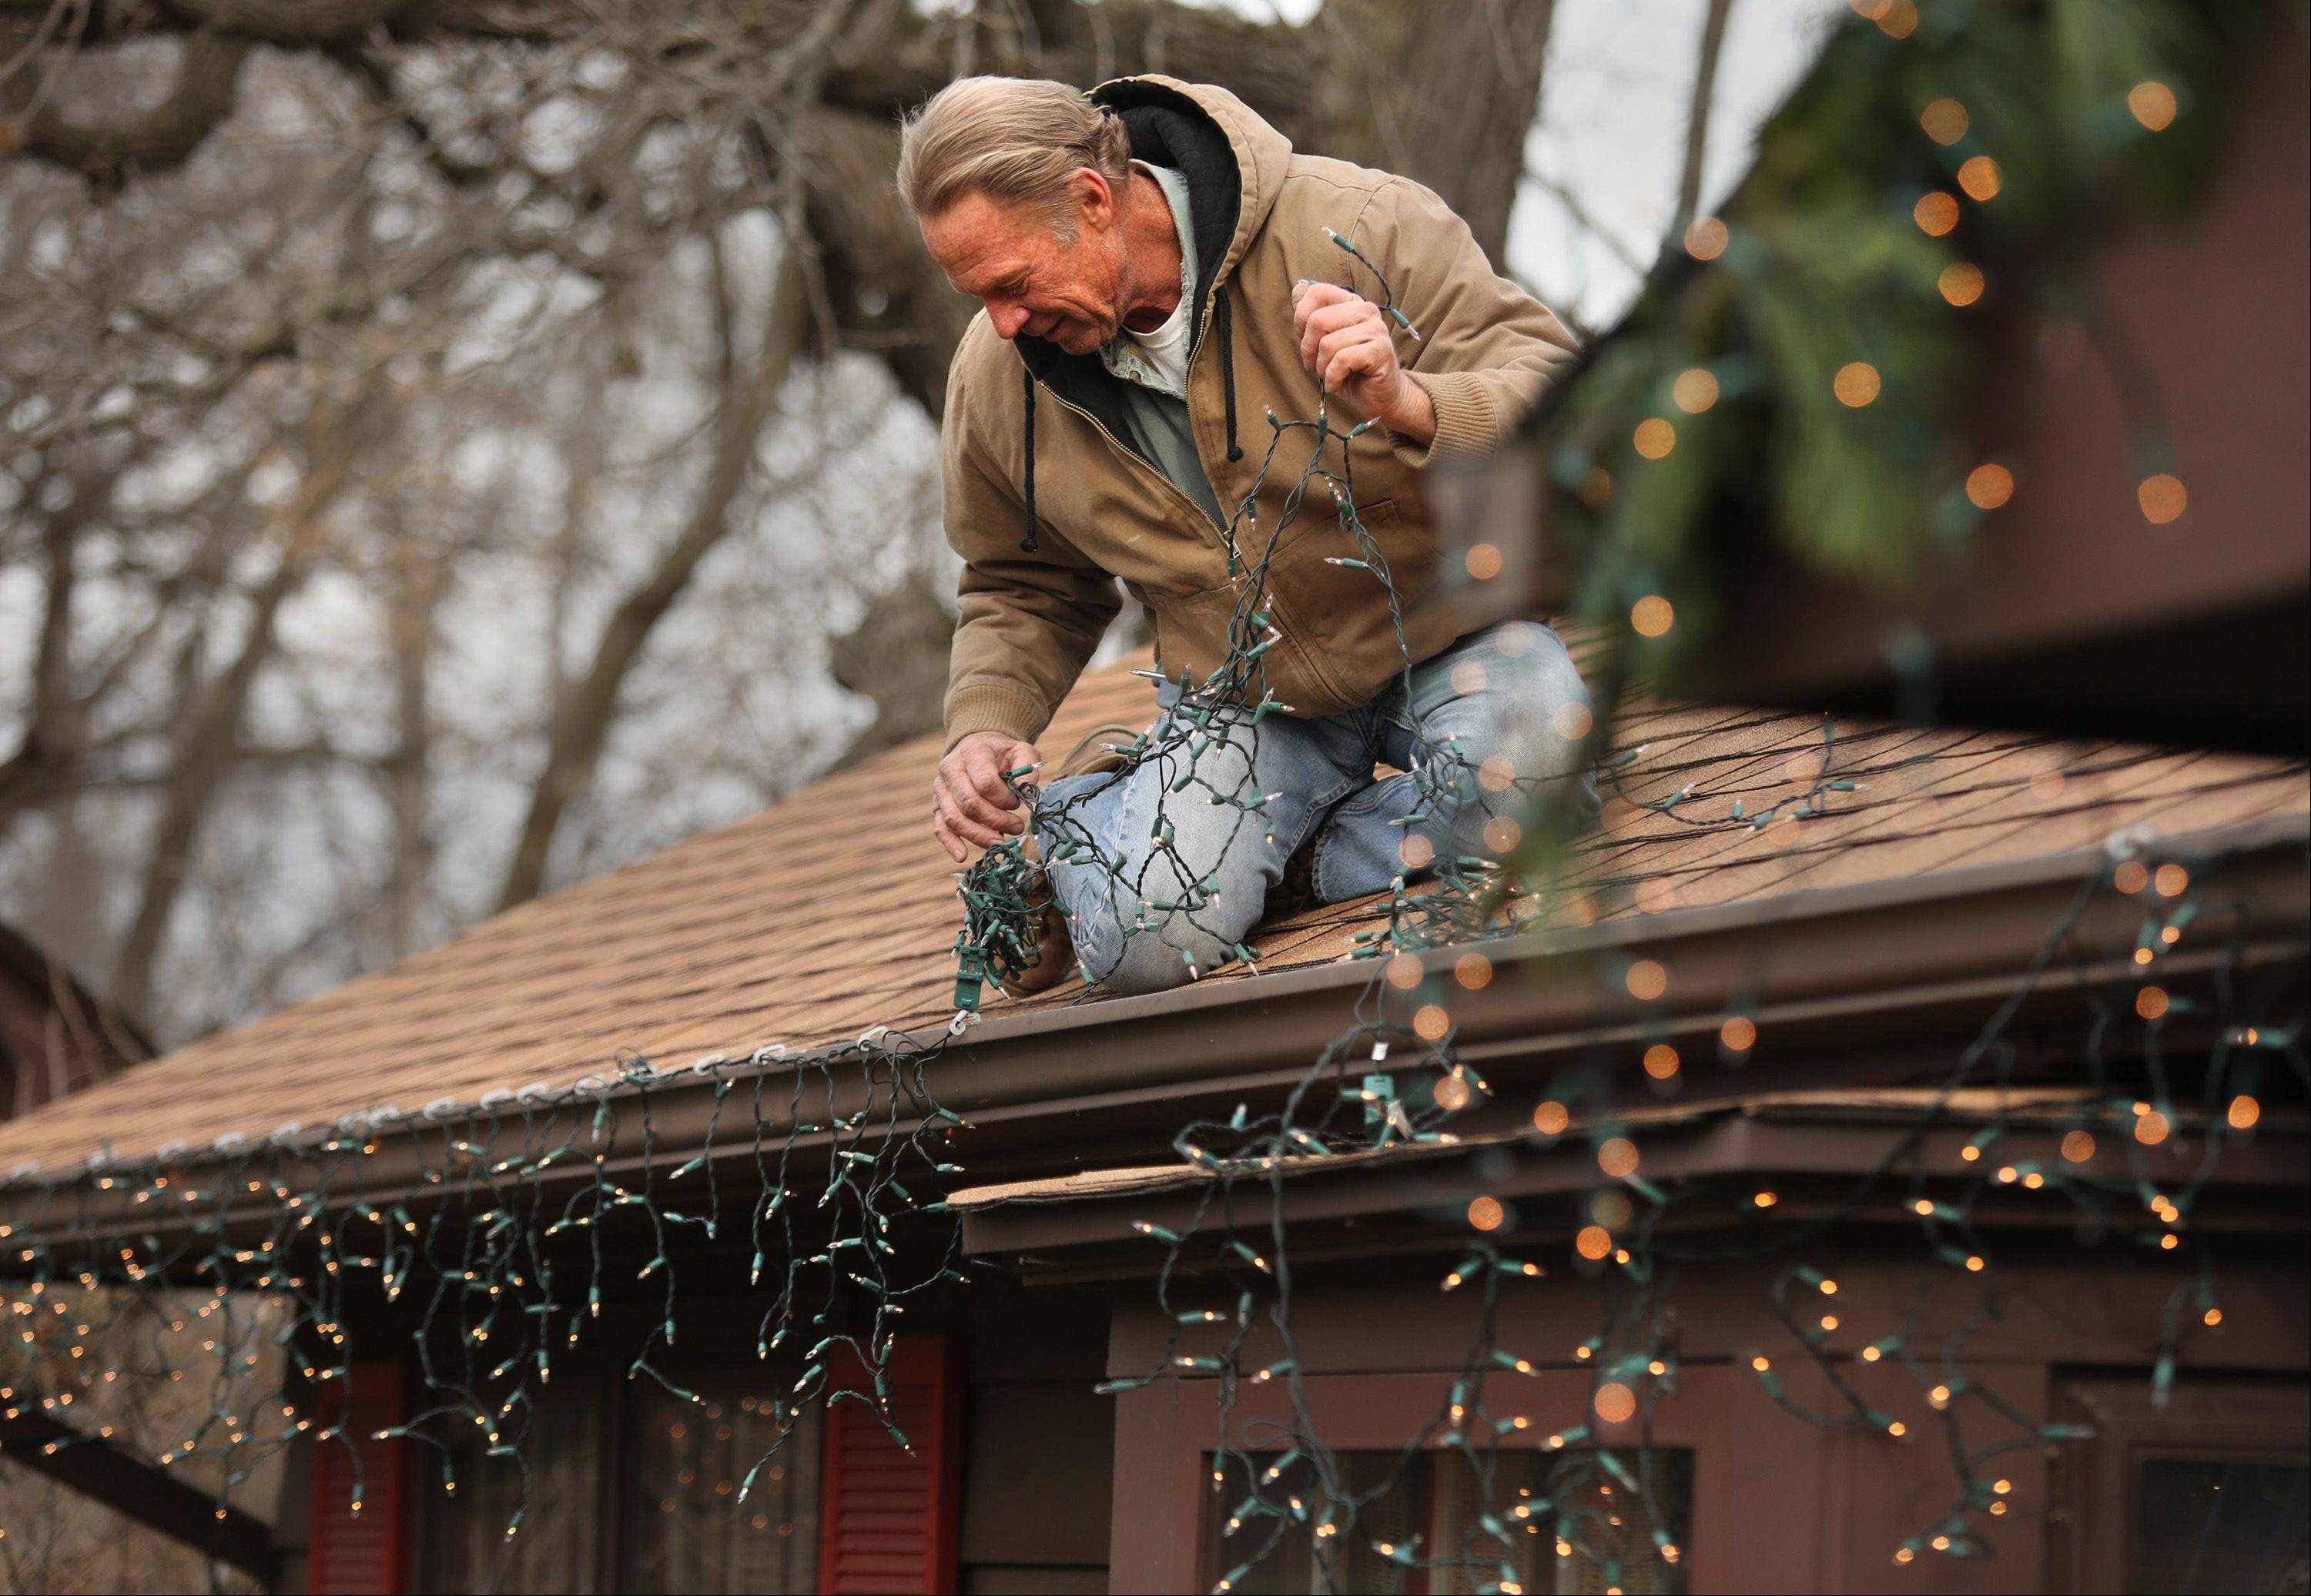 Steve Patzer, of St. Charles, decorates his house with Christmas lights Monday. His three daughters are coming home for the holiday, along with some spouses and even three grandchildren. He says he began decorating the house to surprise the girls when they would come home from college, and he's been keeping the tradition going every year since.